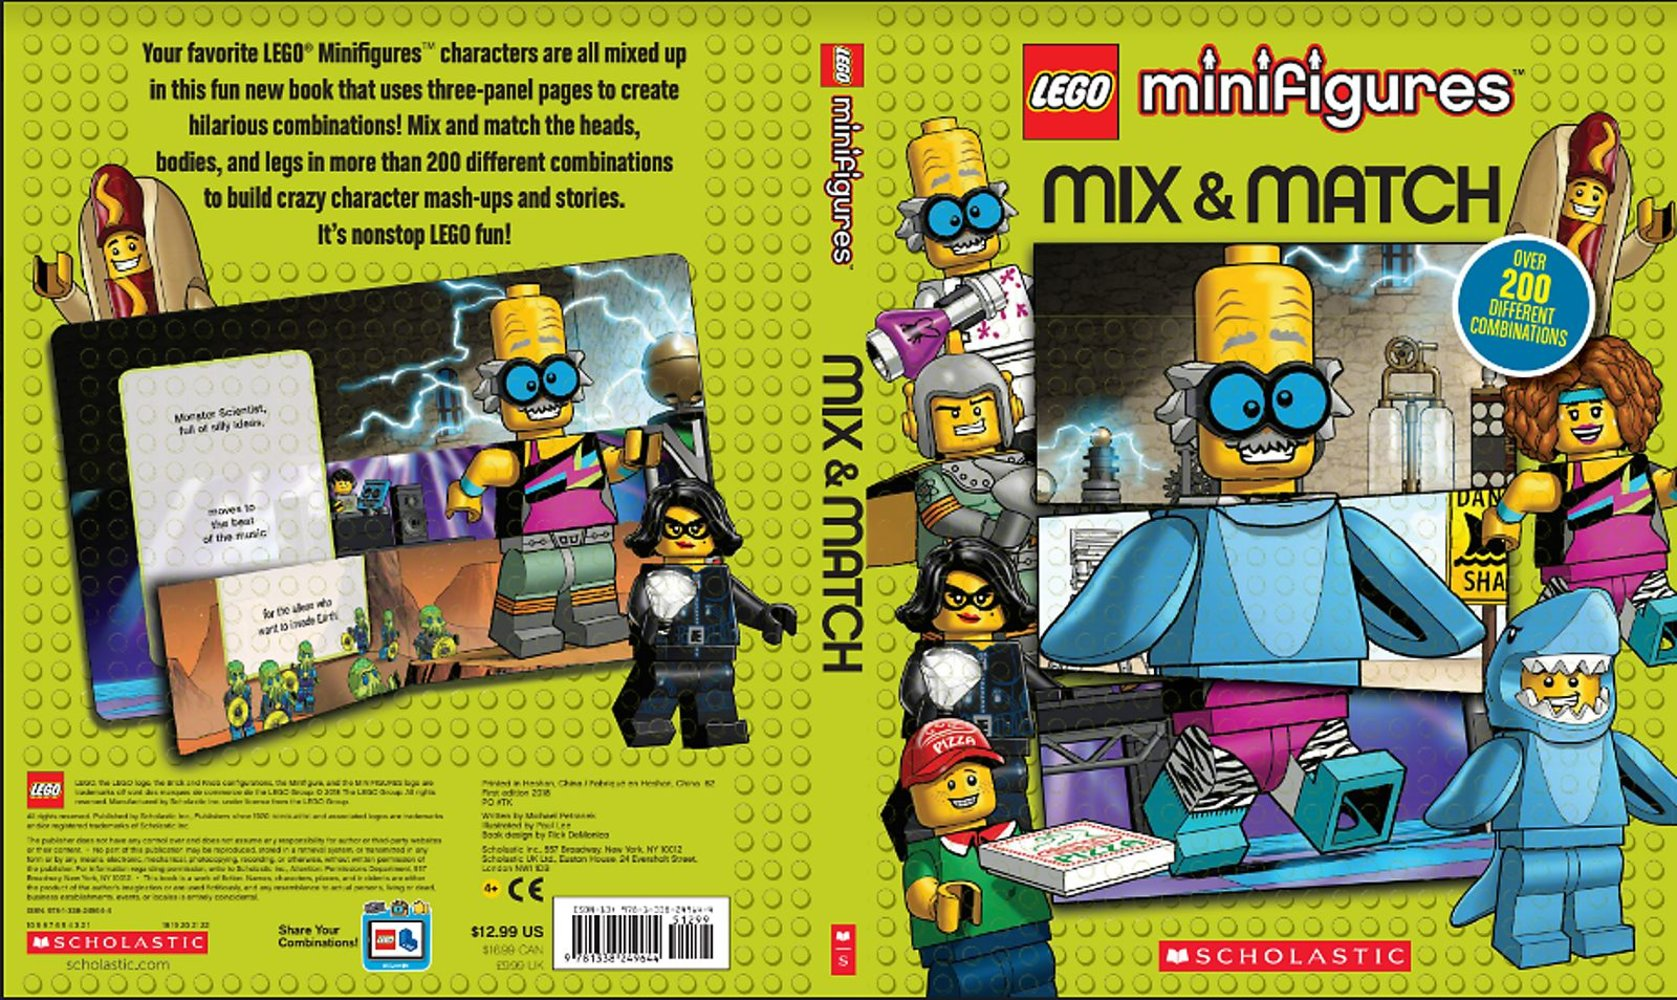 Minifigures: Mix & Match